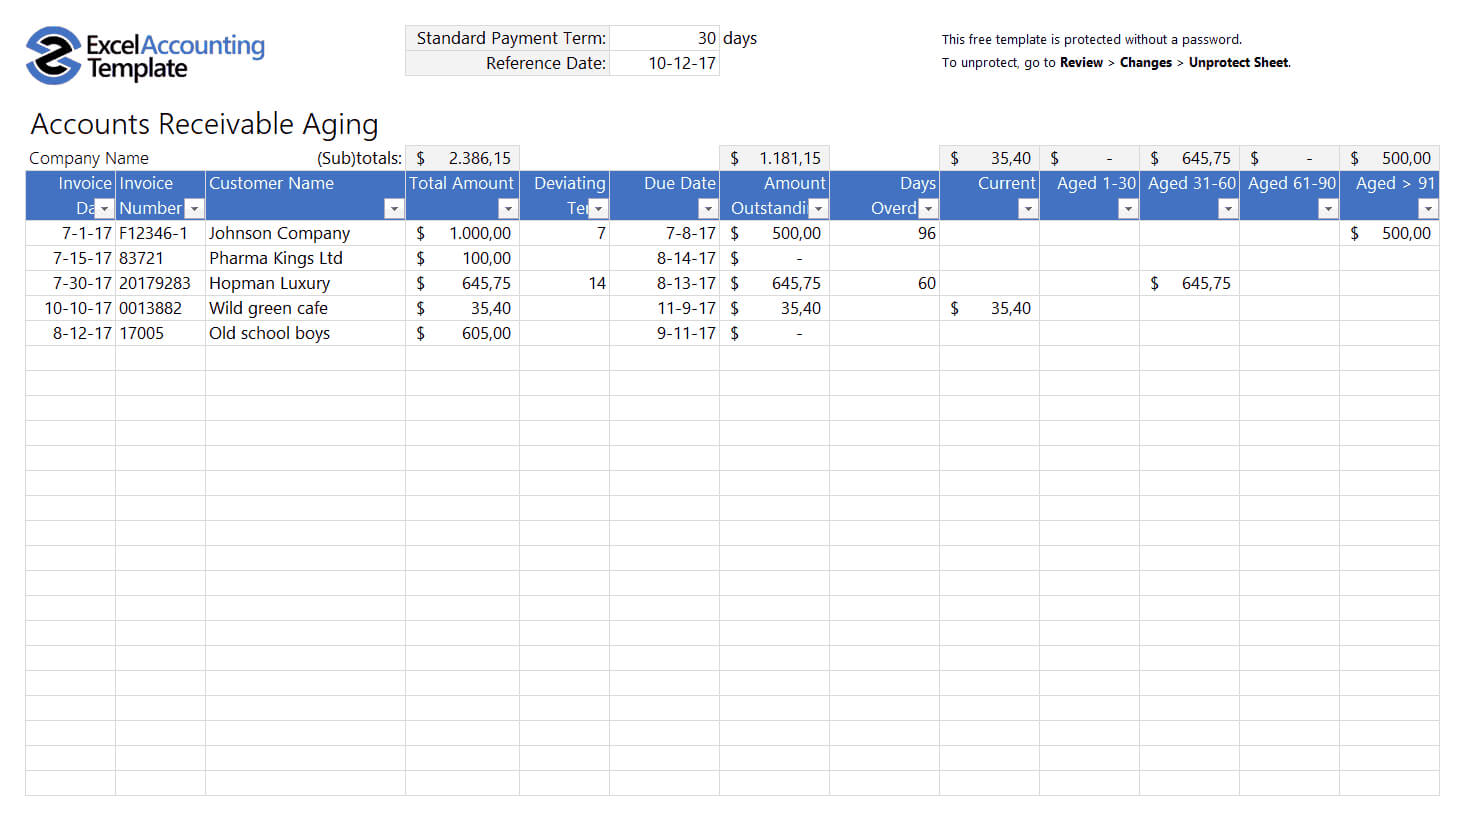 039 Expense Report Templates Excel Template Ideas Accounts within Accounts Receivable Report Template